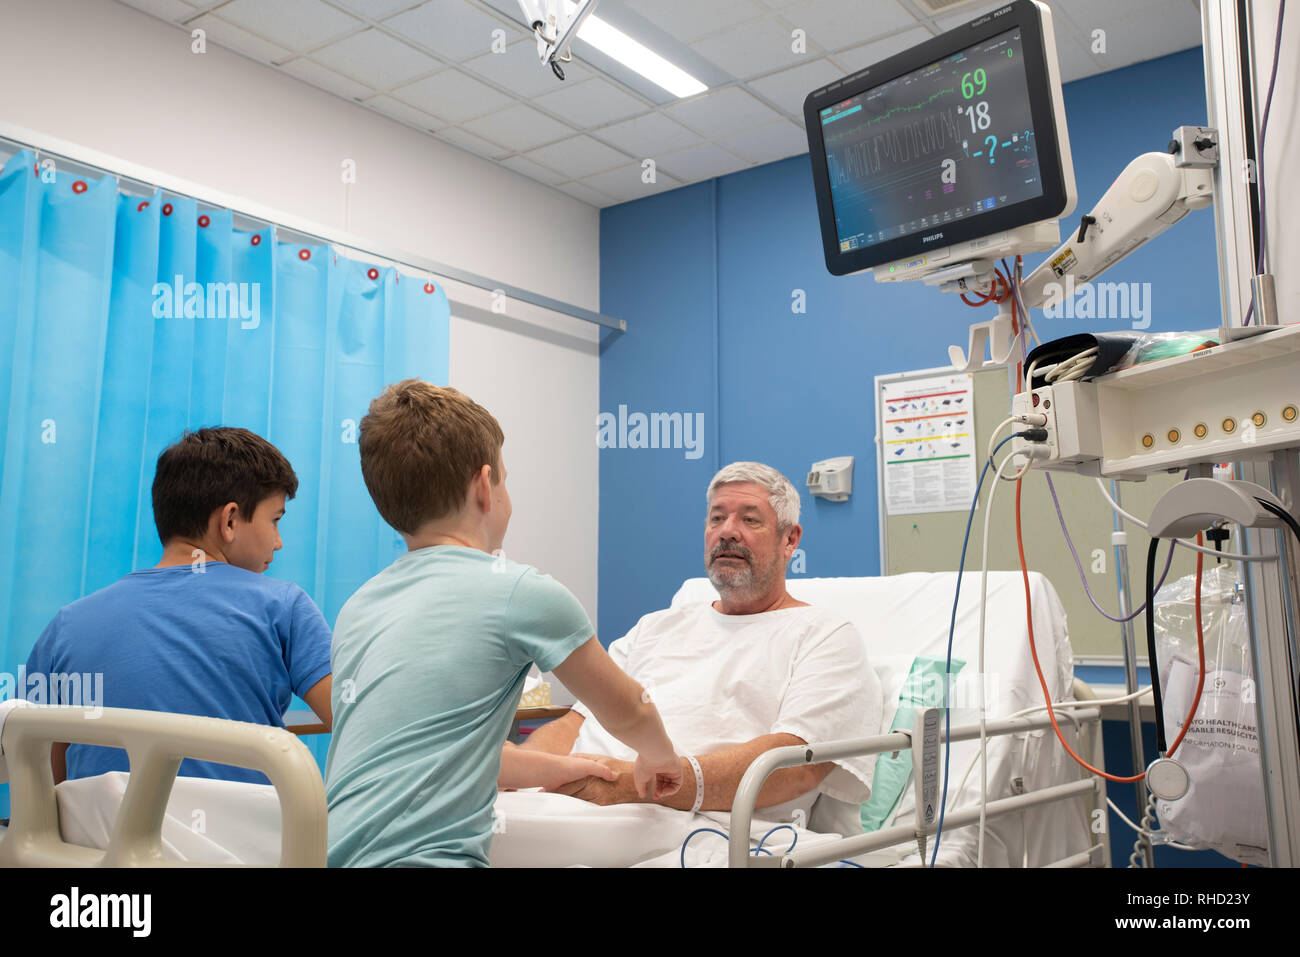 Man in hospital with family around him - Stock Image